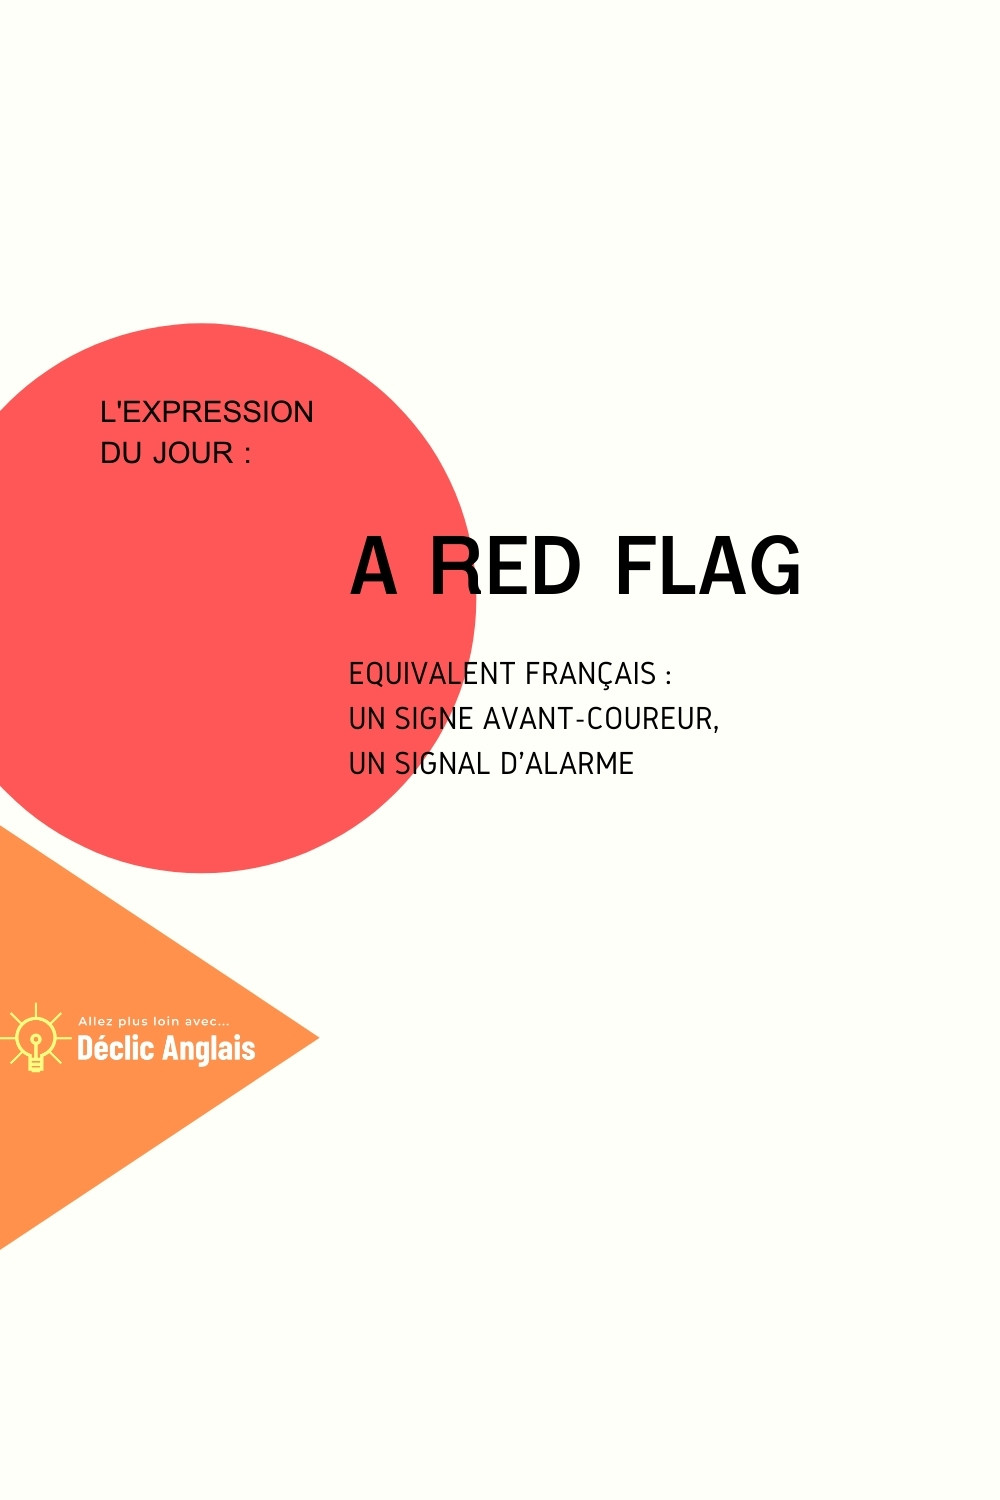 English expression a red flag explained in French